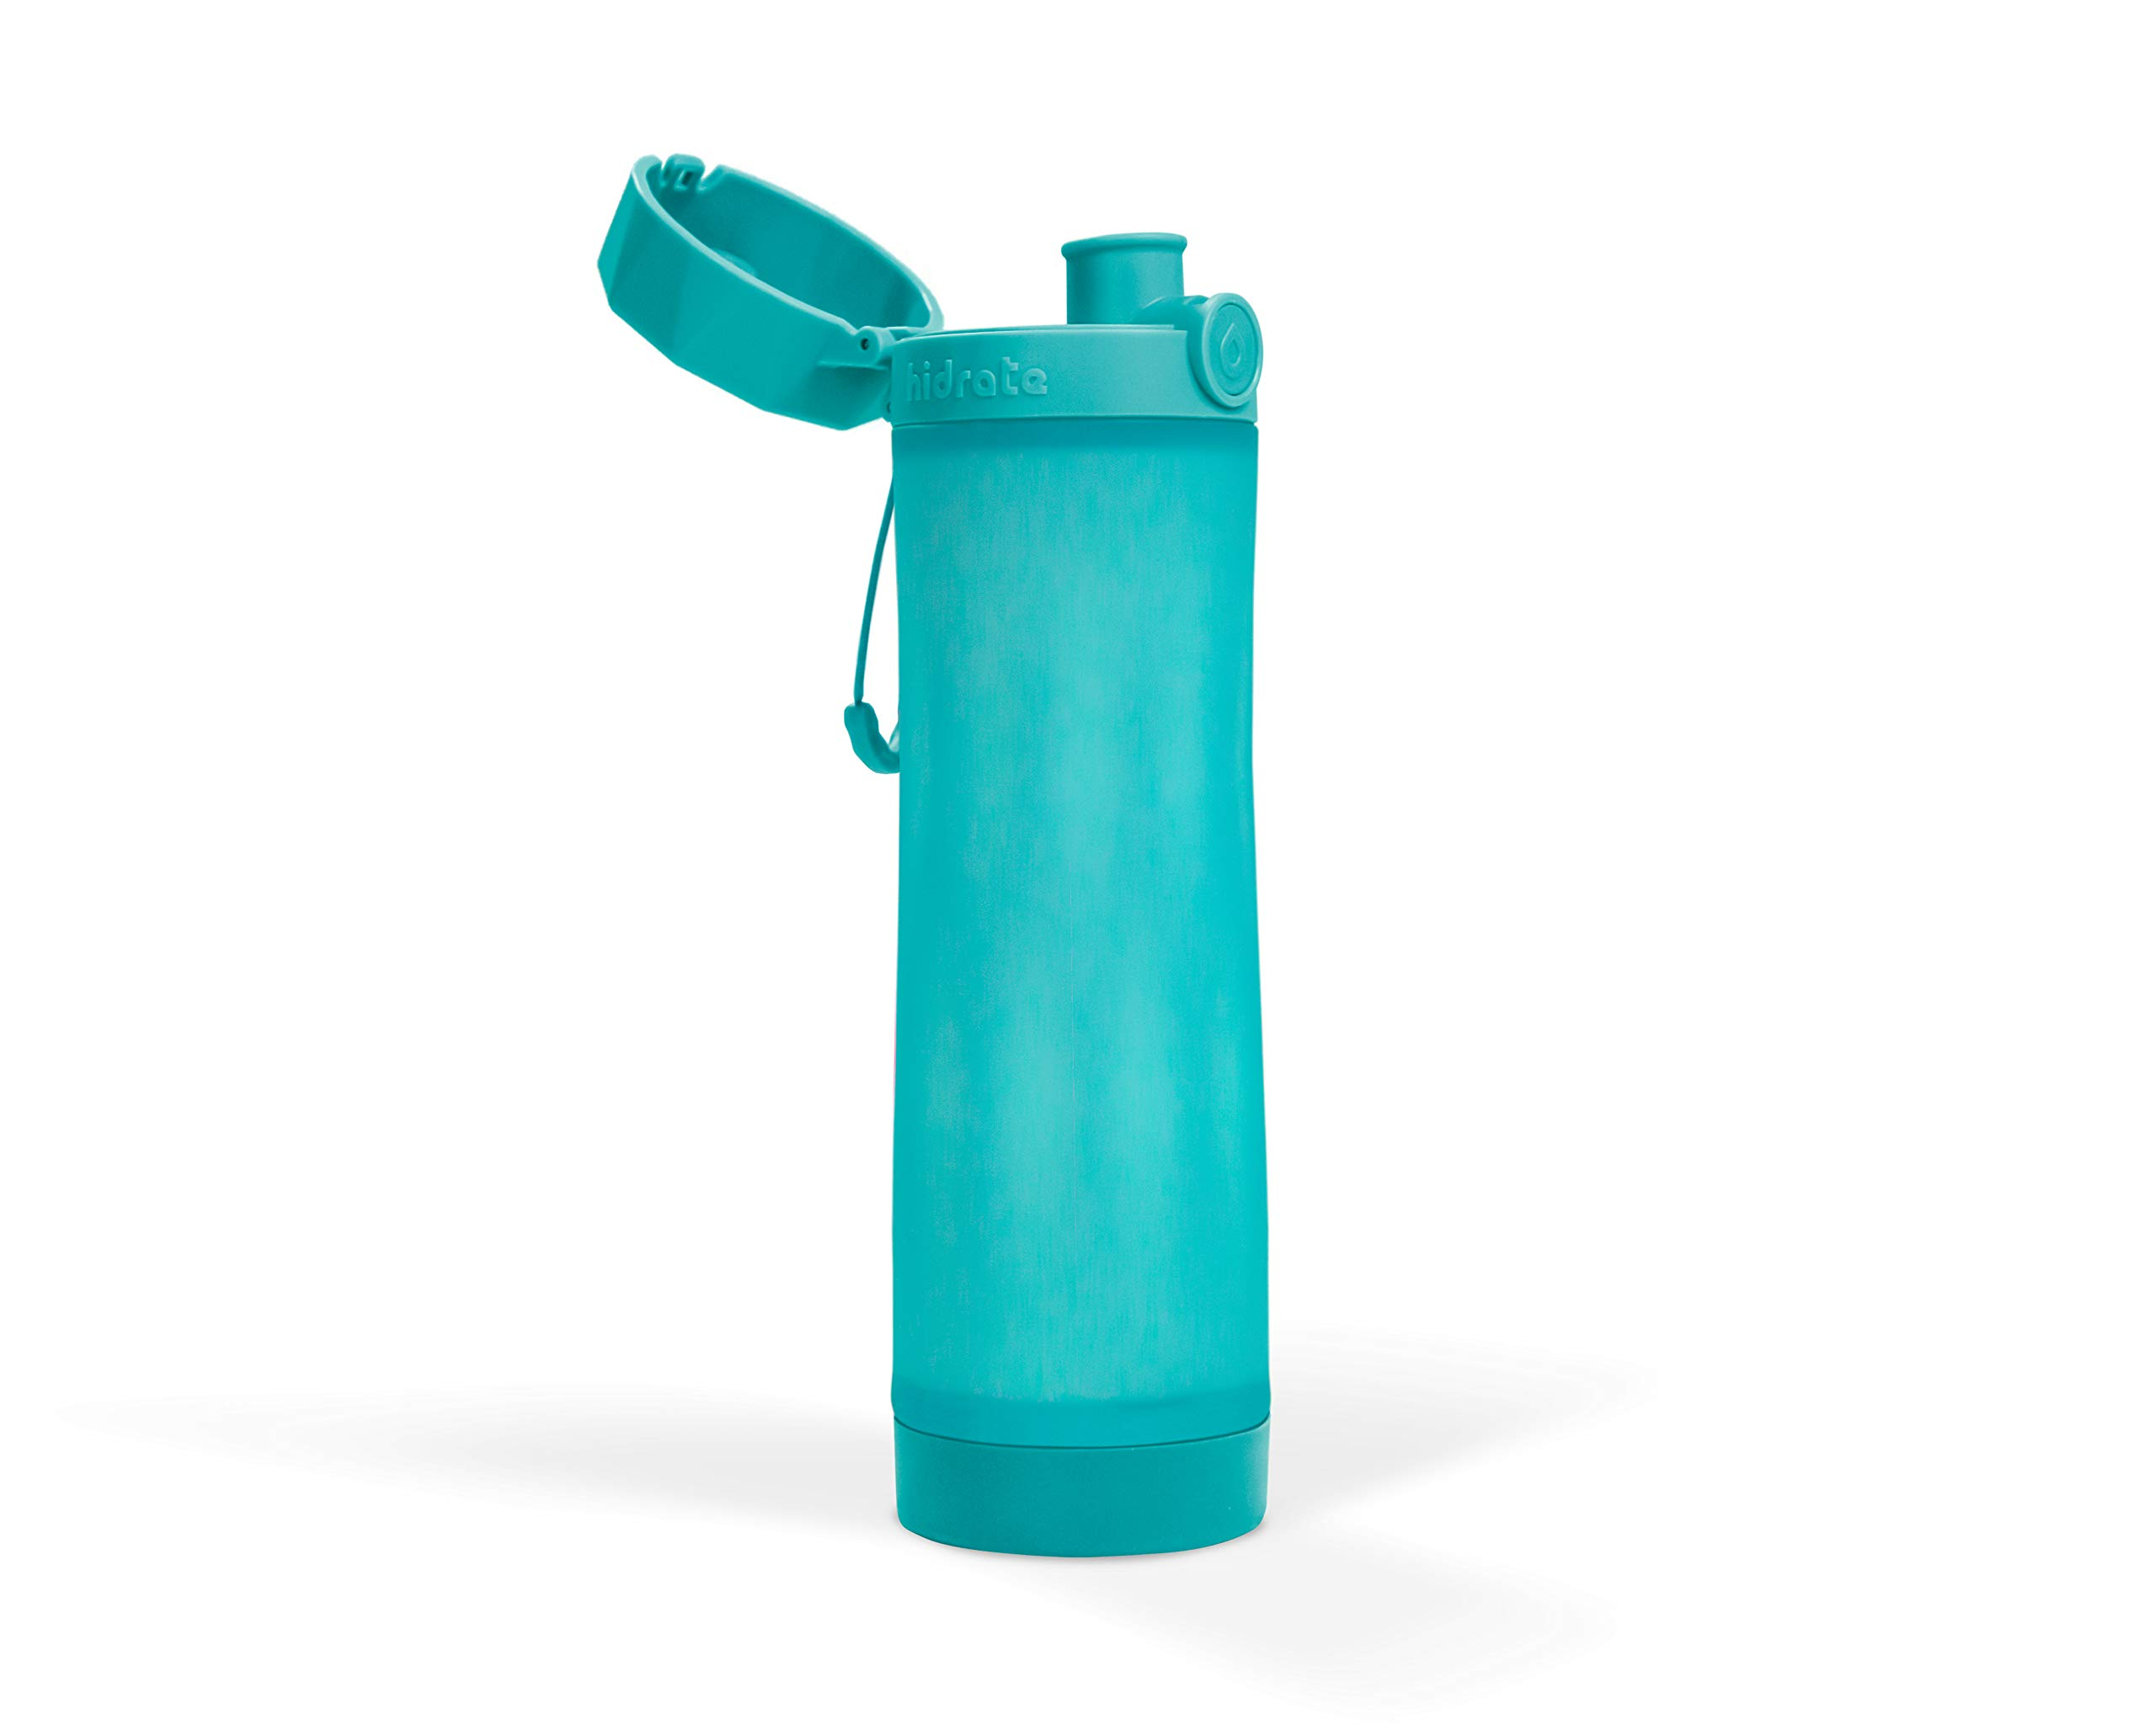 Hidrate Spark 3 Smart Water Bottle - Tracks Water Intake & Glows to Remind You to Stay Hydrated (Scuba) by Hidrate Spark (Image #6)